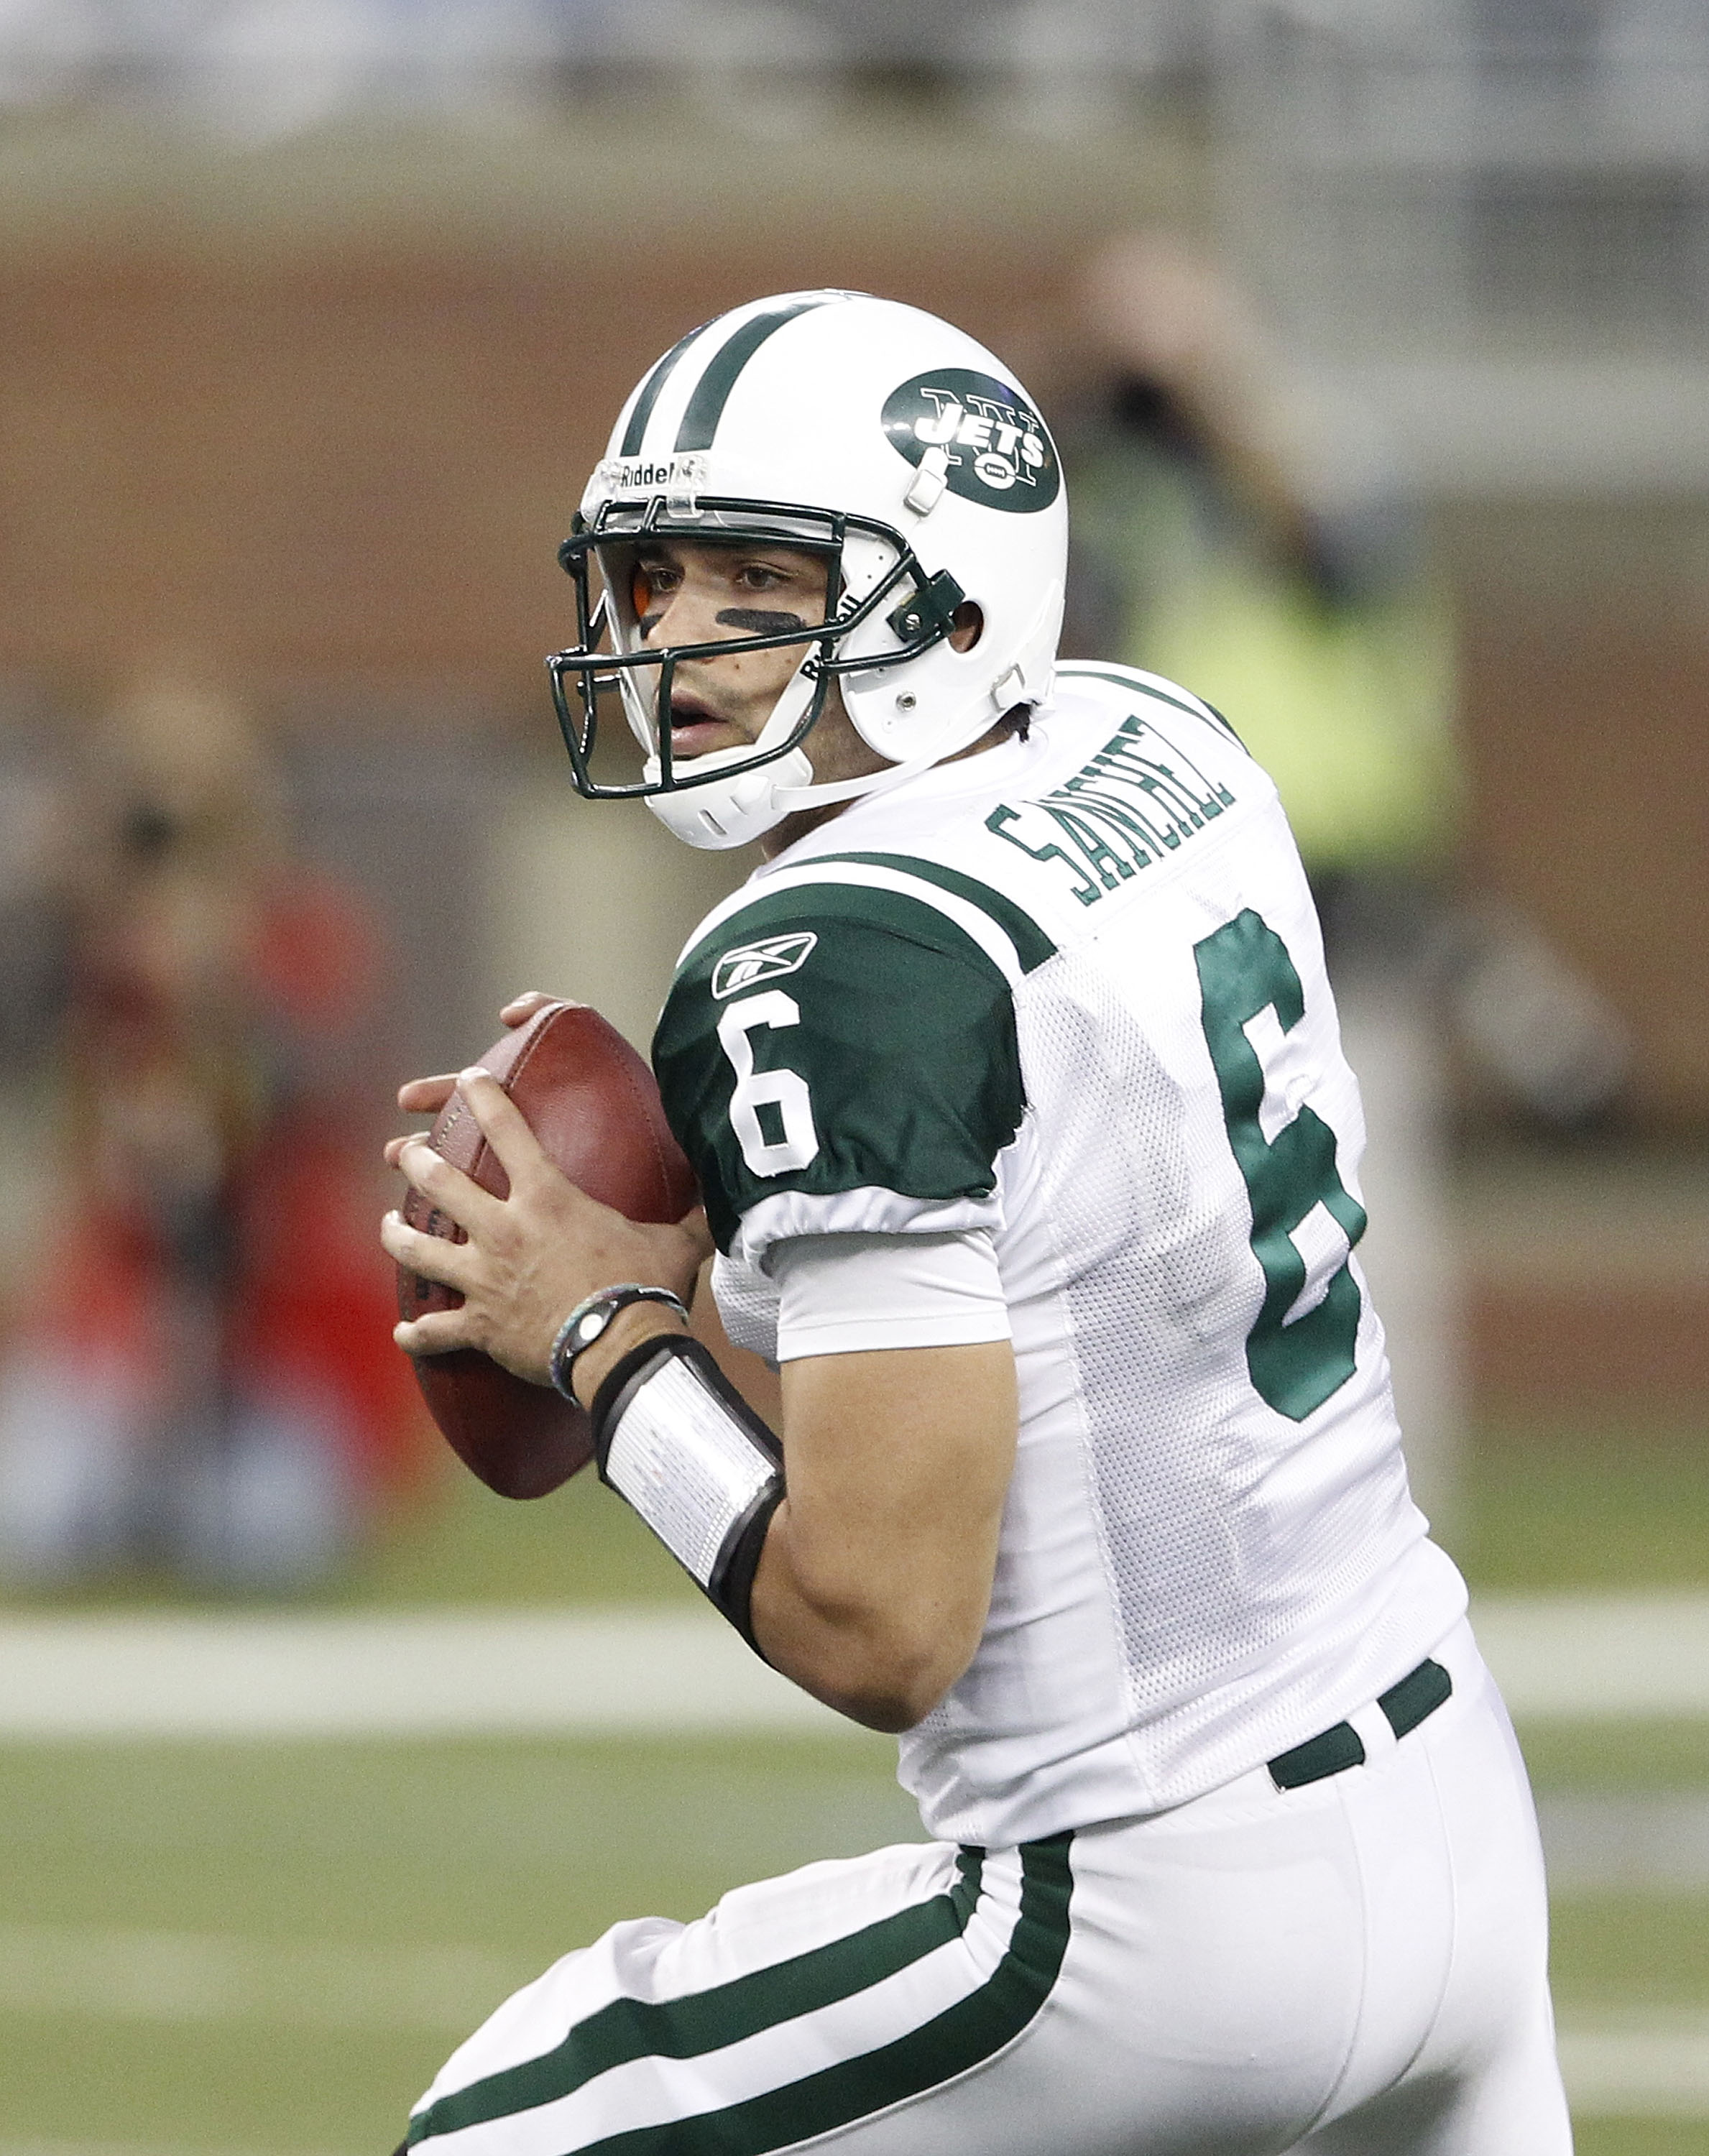 DETROIT - NOVEMBER 07:  Mark Sanchez #6 of the New York Jets looks to throw a pass during the game against the Detroit Lions at Ford Field on November 7, 2010 in Detroit, Michigan. The Jets defeated the Lions 23-20 in overtime.  (Photo by Leon Halip/Getty